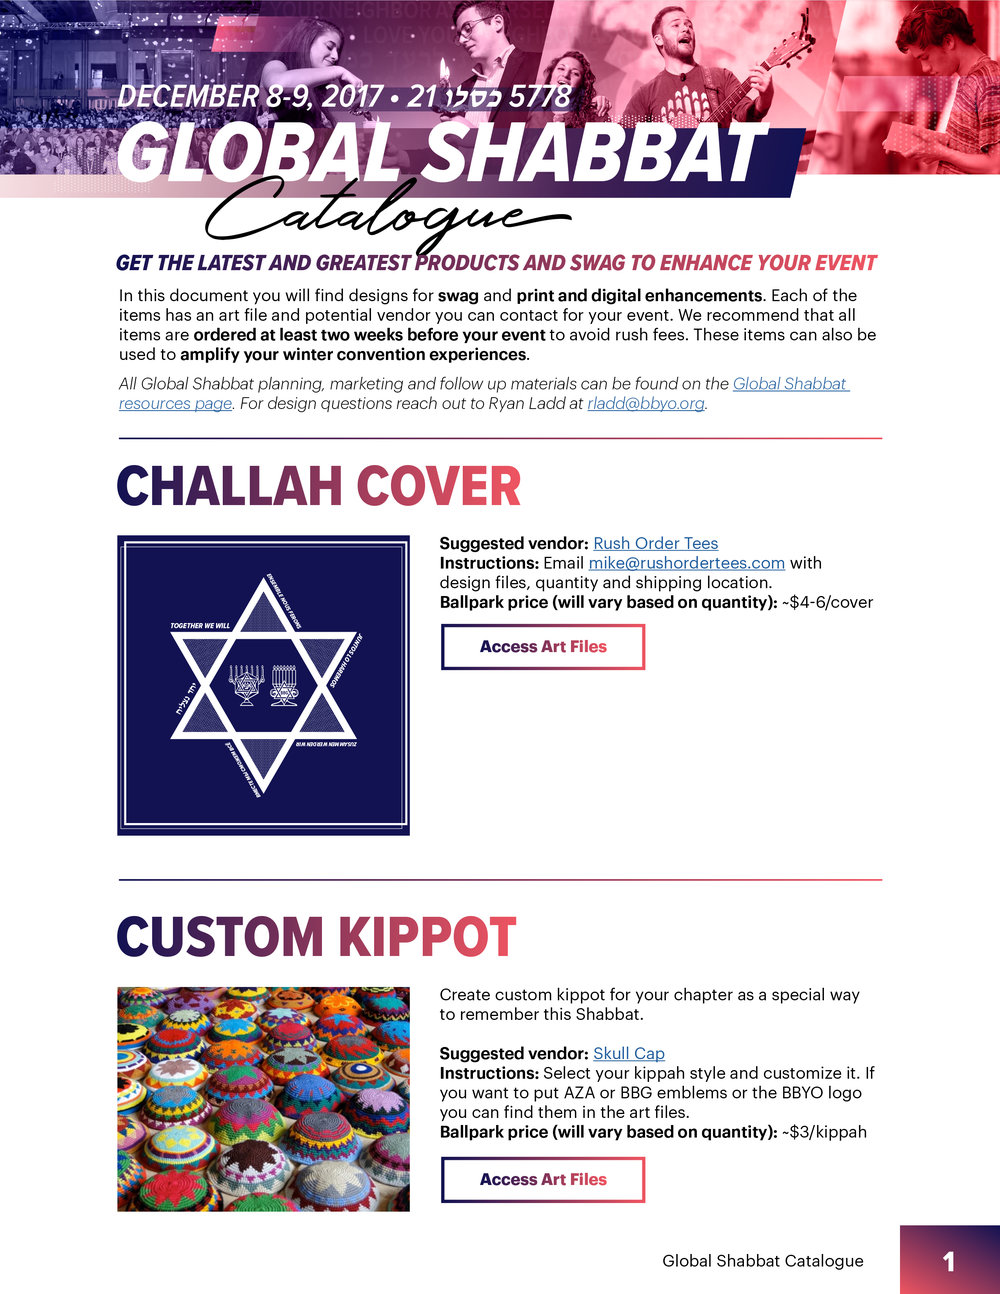 Global Shabbat Catalogue   Access designs for swag and print enhancements for Global Shabbat events including  banners, posters, event specific merchandise and Shabbat Judaica . Each item has an art file and potential vendor you can contact for your event. We recommend that all items are ordered at least two weeks before your event to avoid rush fees. These items can also be used to amplify your winter convention experiences.    Art work can be customized and adapted to suit items not in the guide.